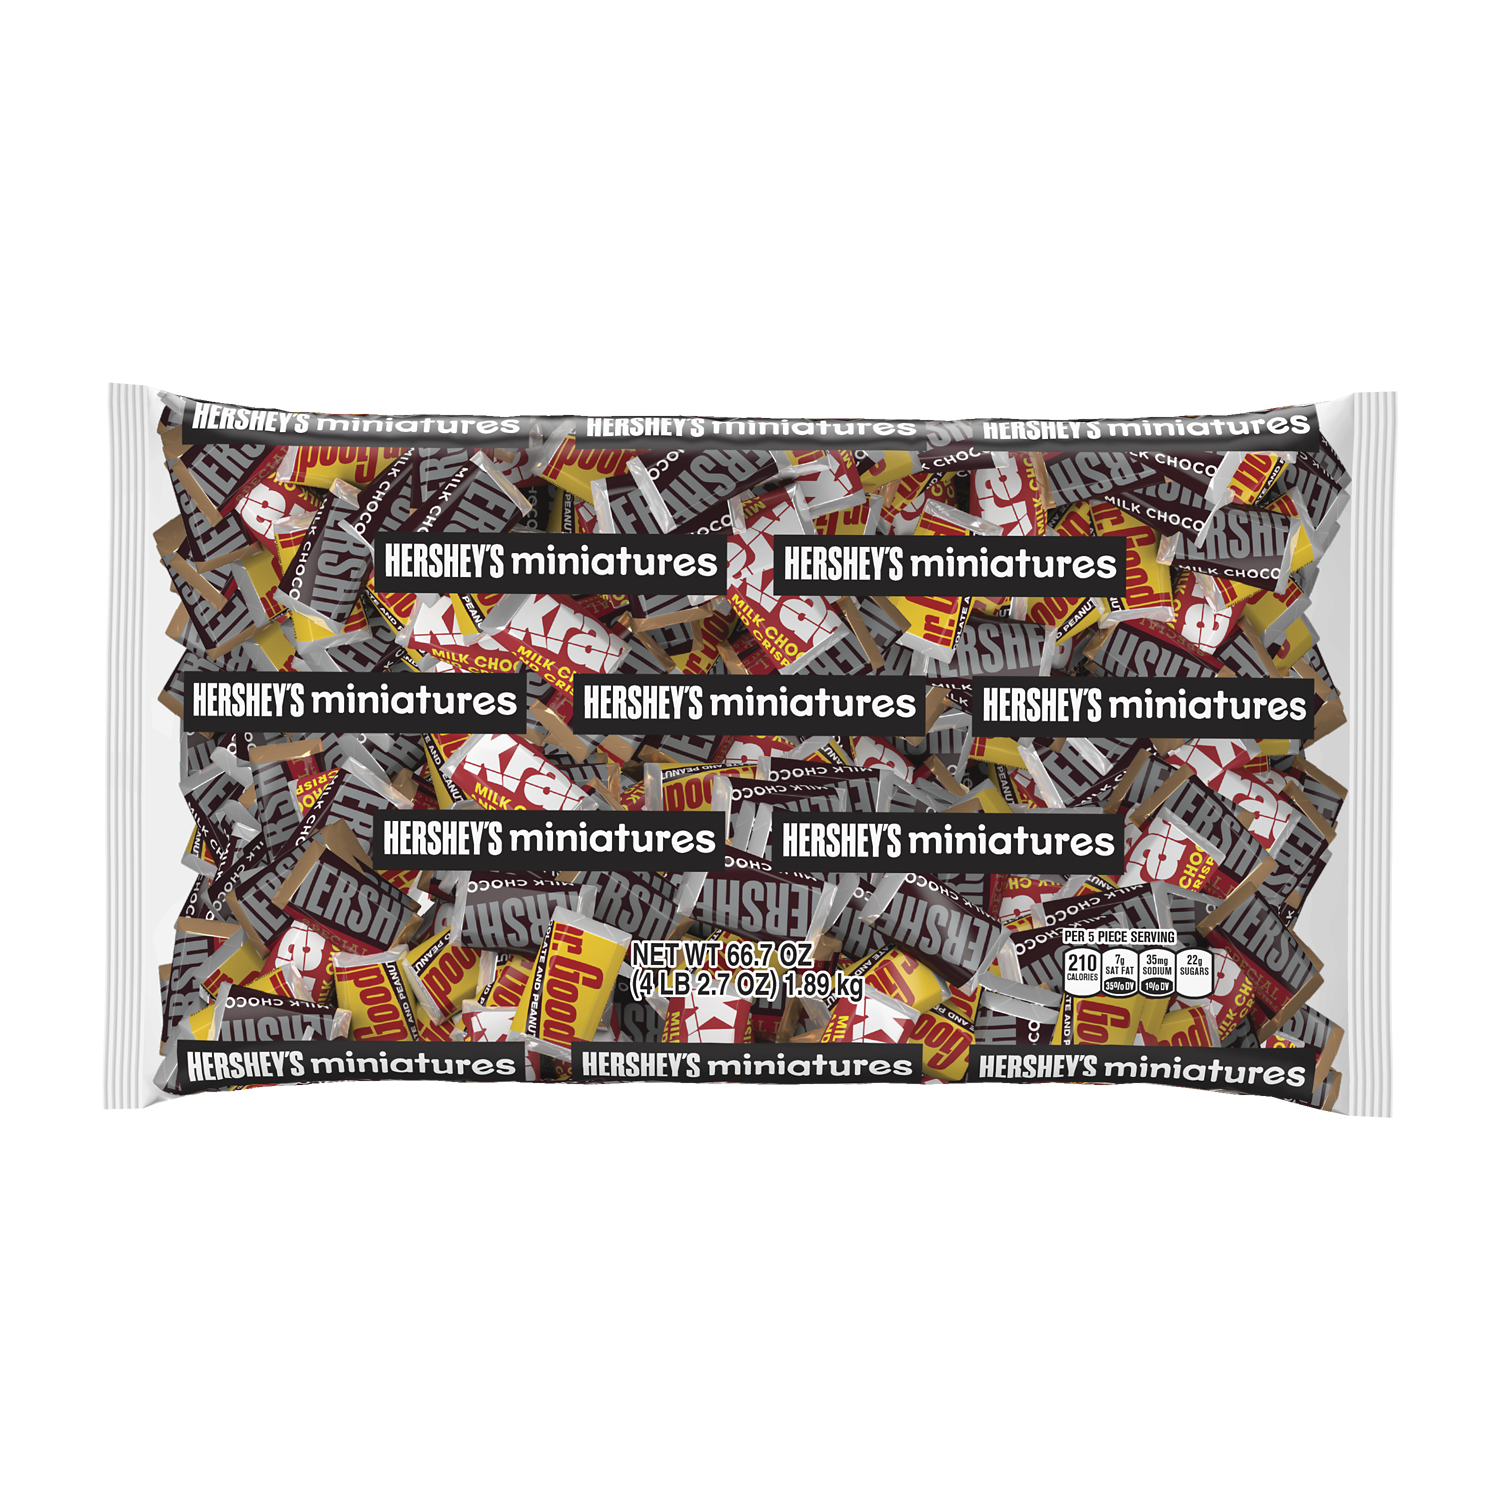 HERSHEY'S Miniatures Assortment, 66.7 oz bag - Front of Package